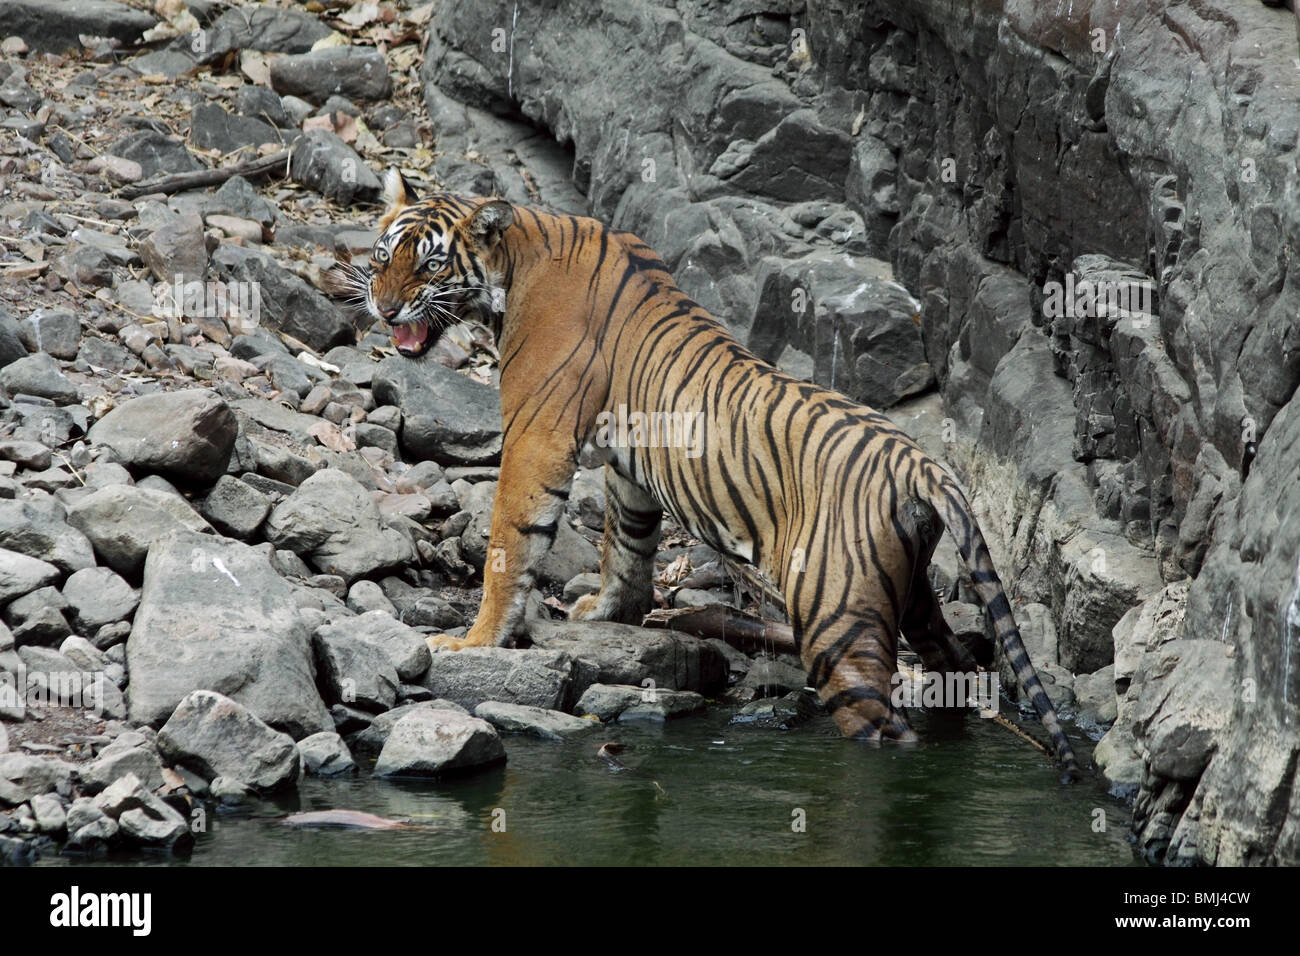 Tiger snarling while getting up from a water hole in Ranthambhore National Park, India - Stock Image